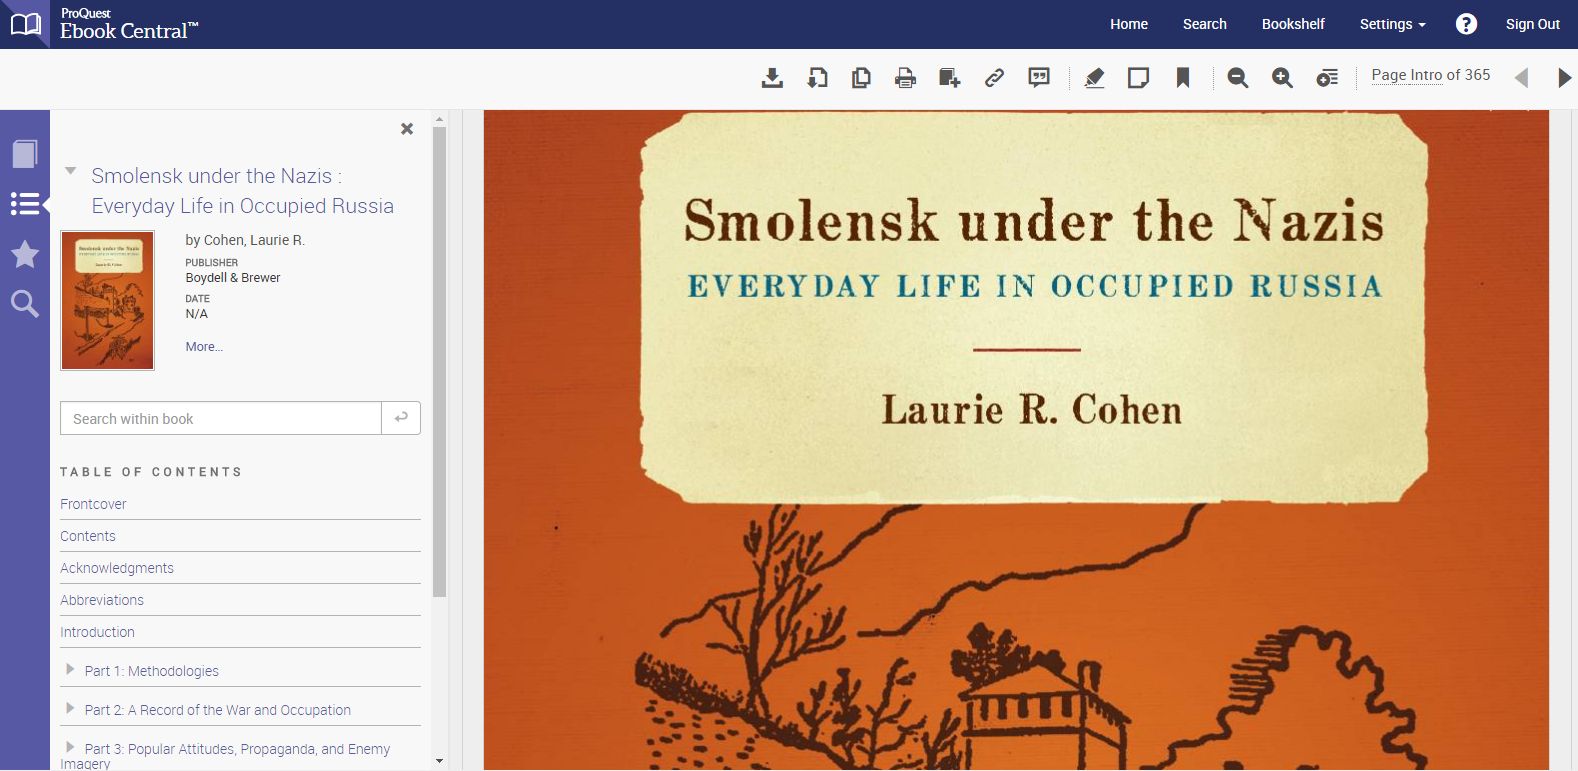 Proquest Ebook Central - Ebook Collections - LibGuides at